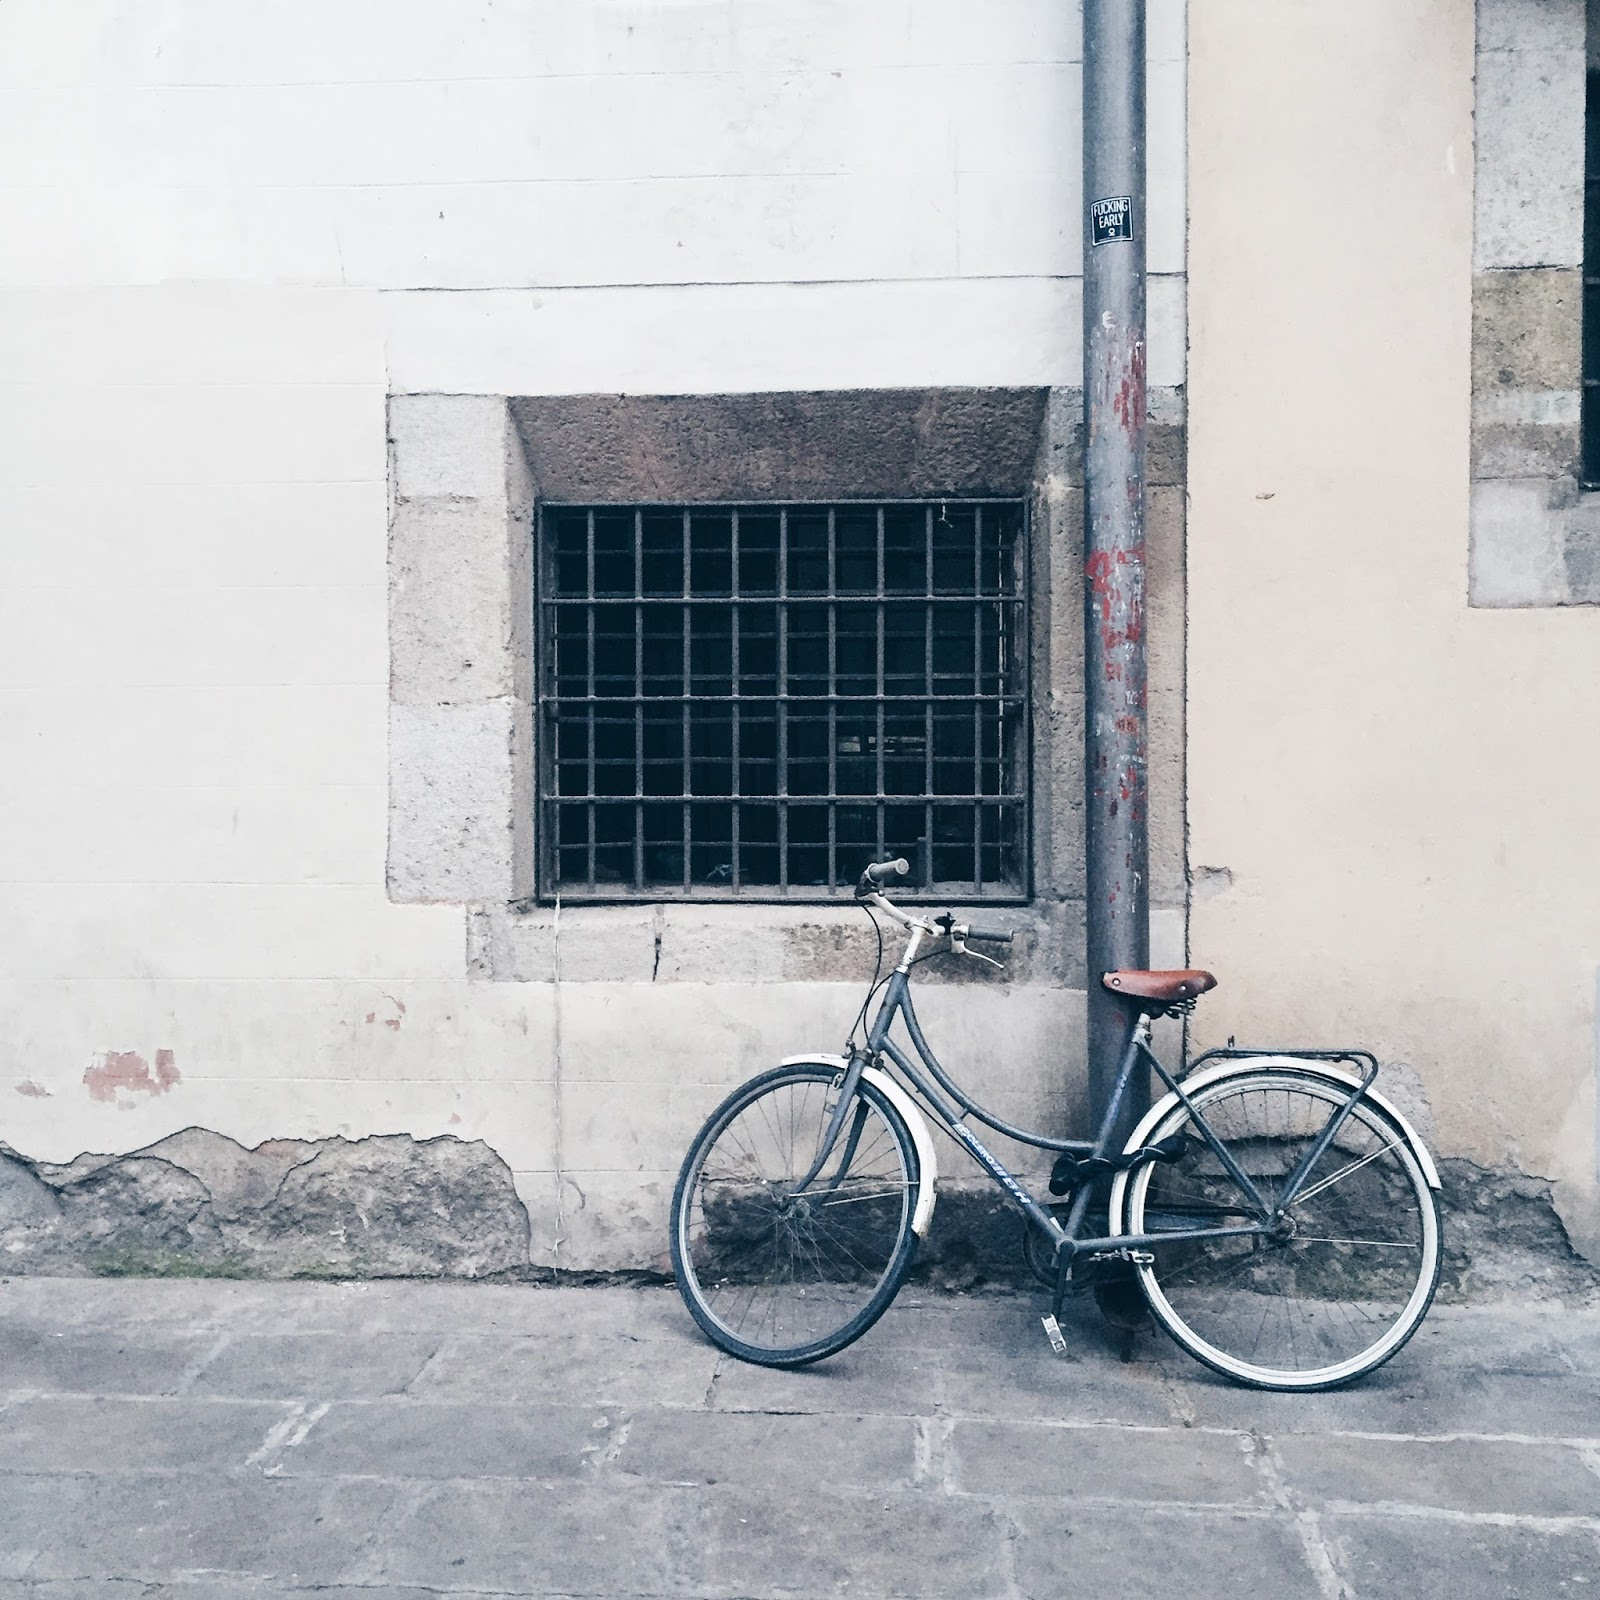 bicycle leaning against a wall in barcelona